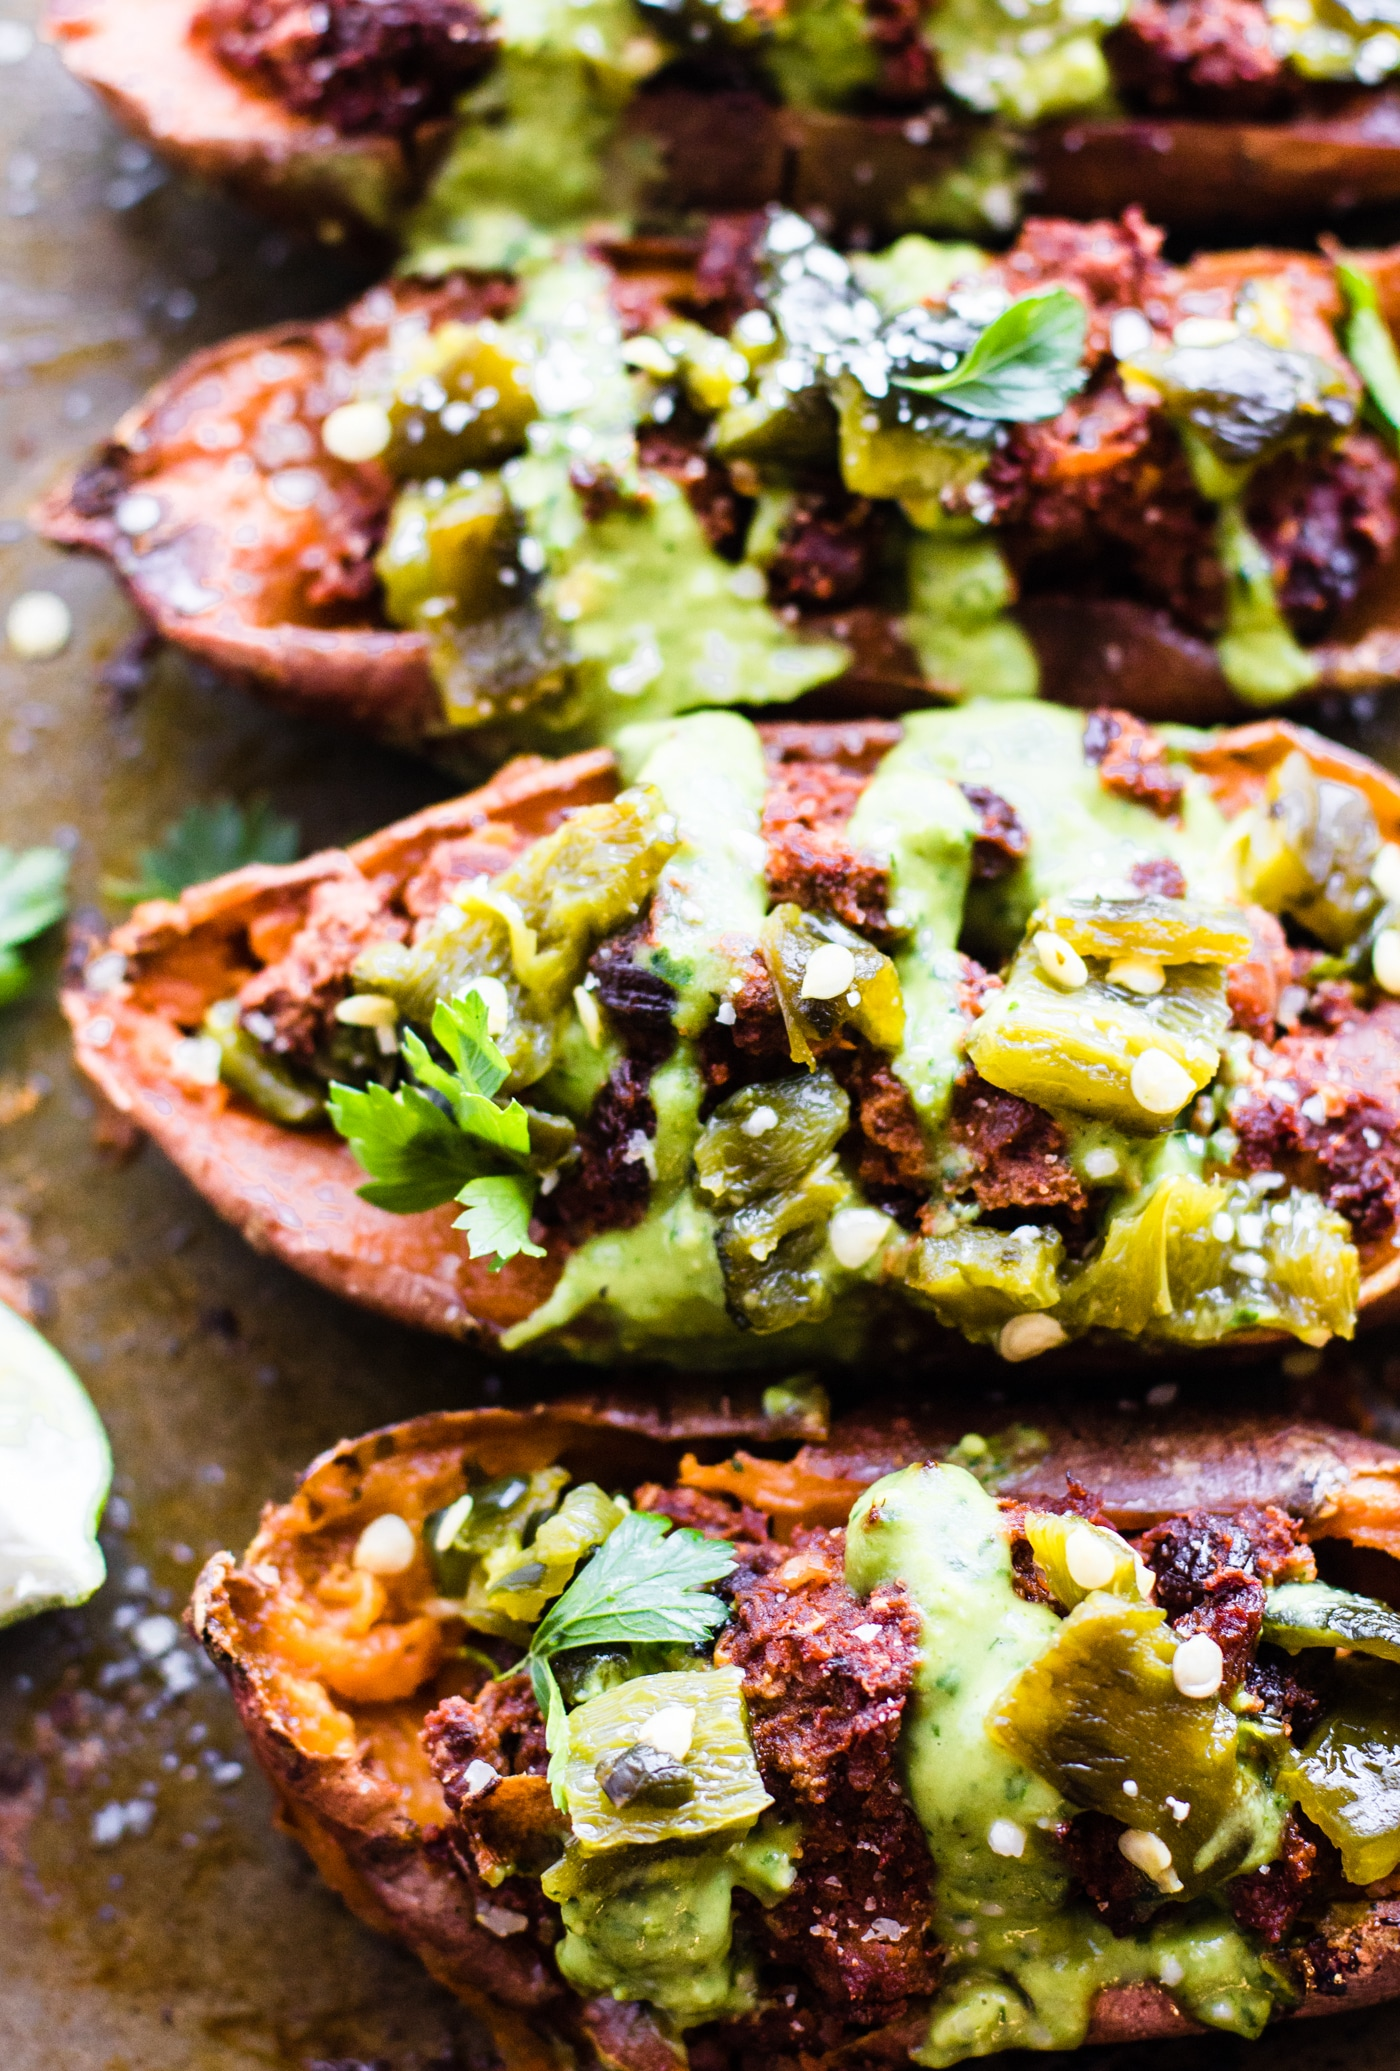 Ancho beef chili stuffed and baked into Sweet Potato Skins